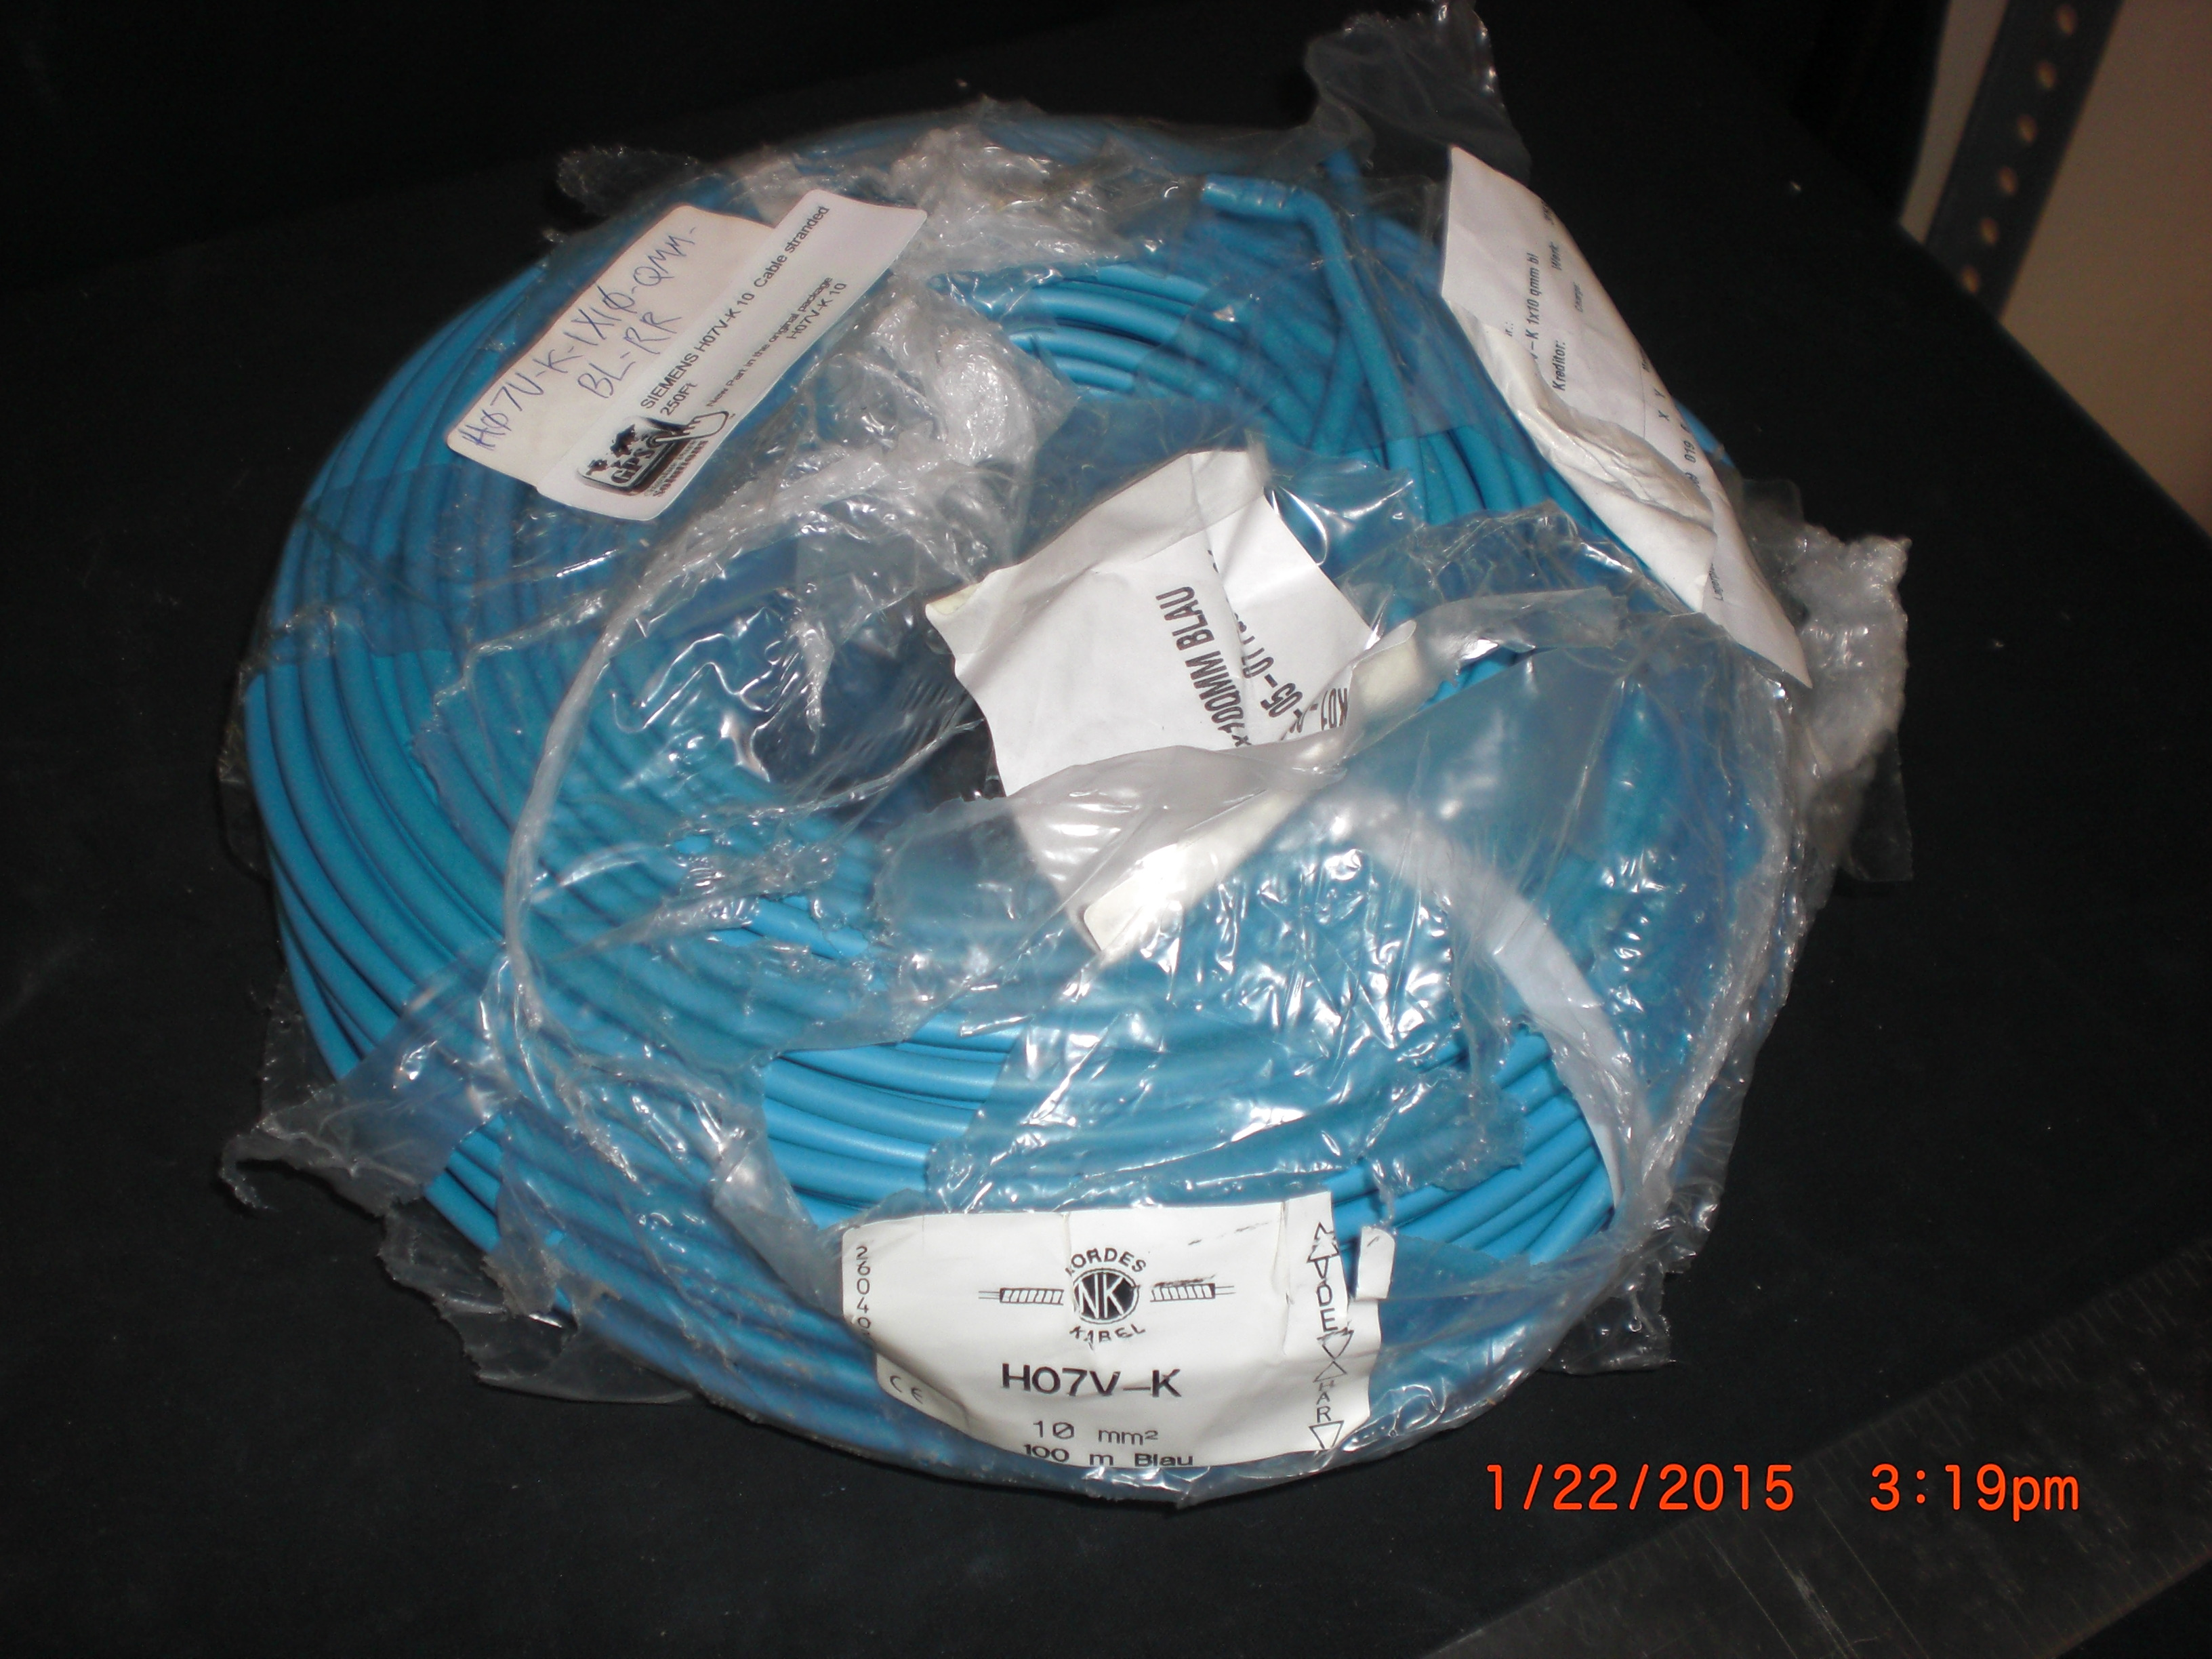 Cable SIEMENS H07V-K 10   stranded 250Ft